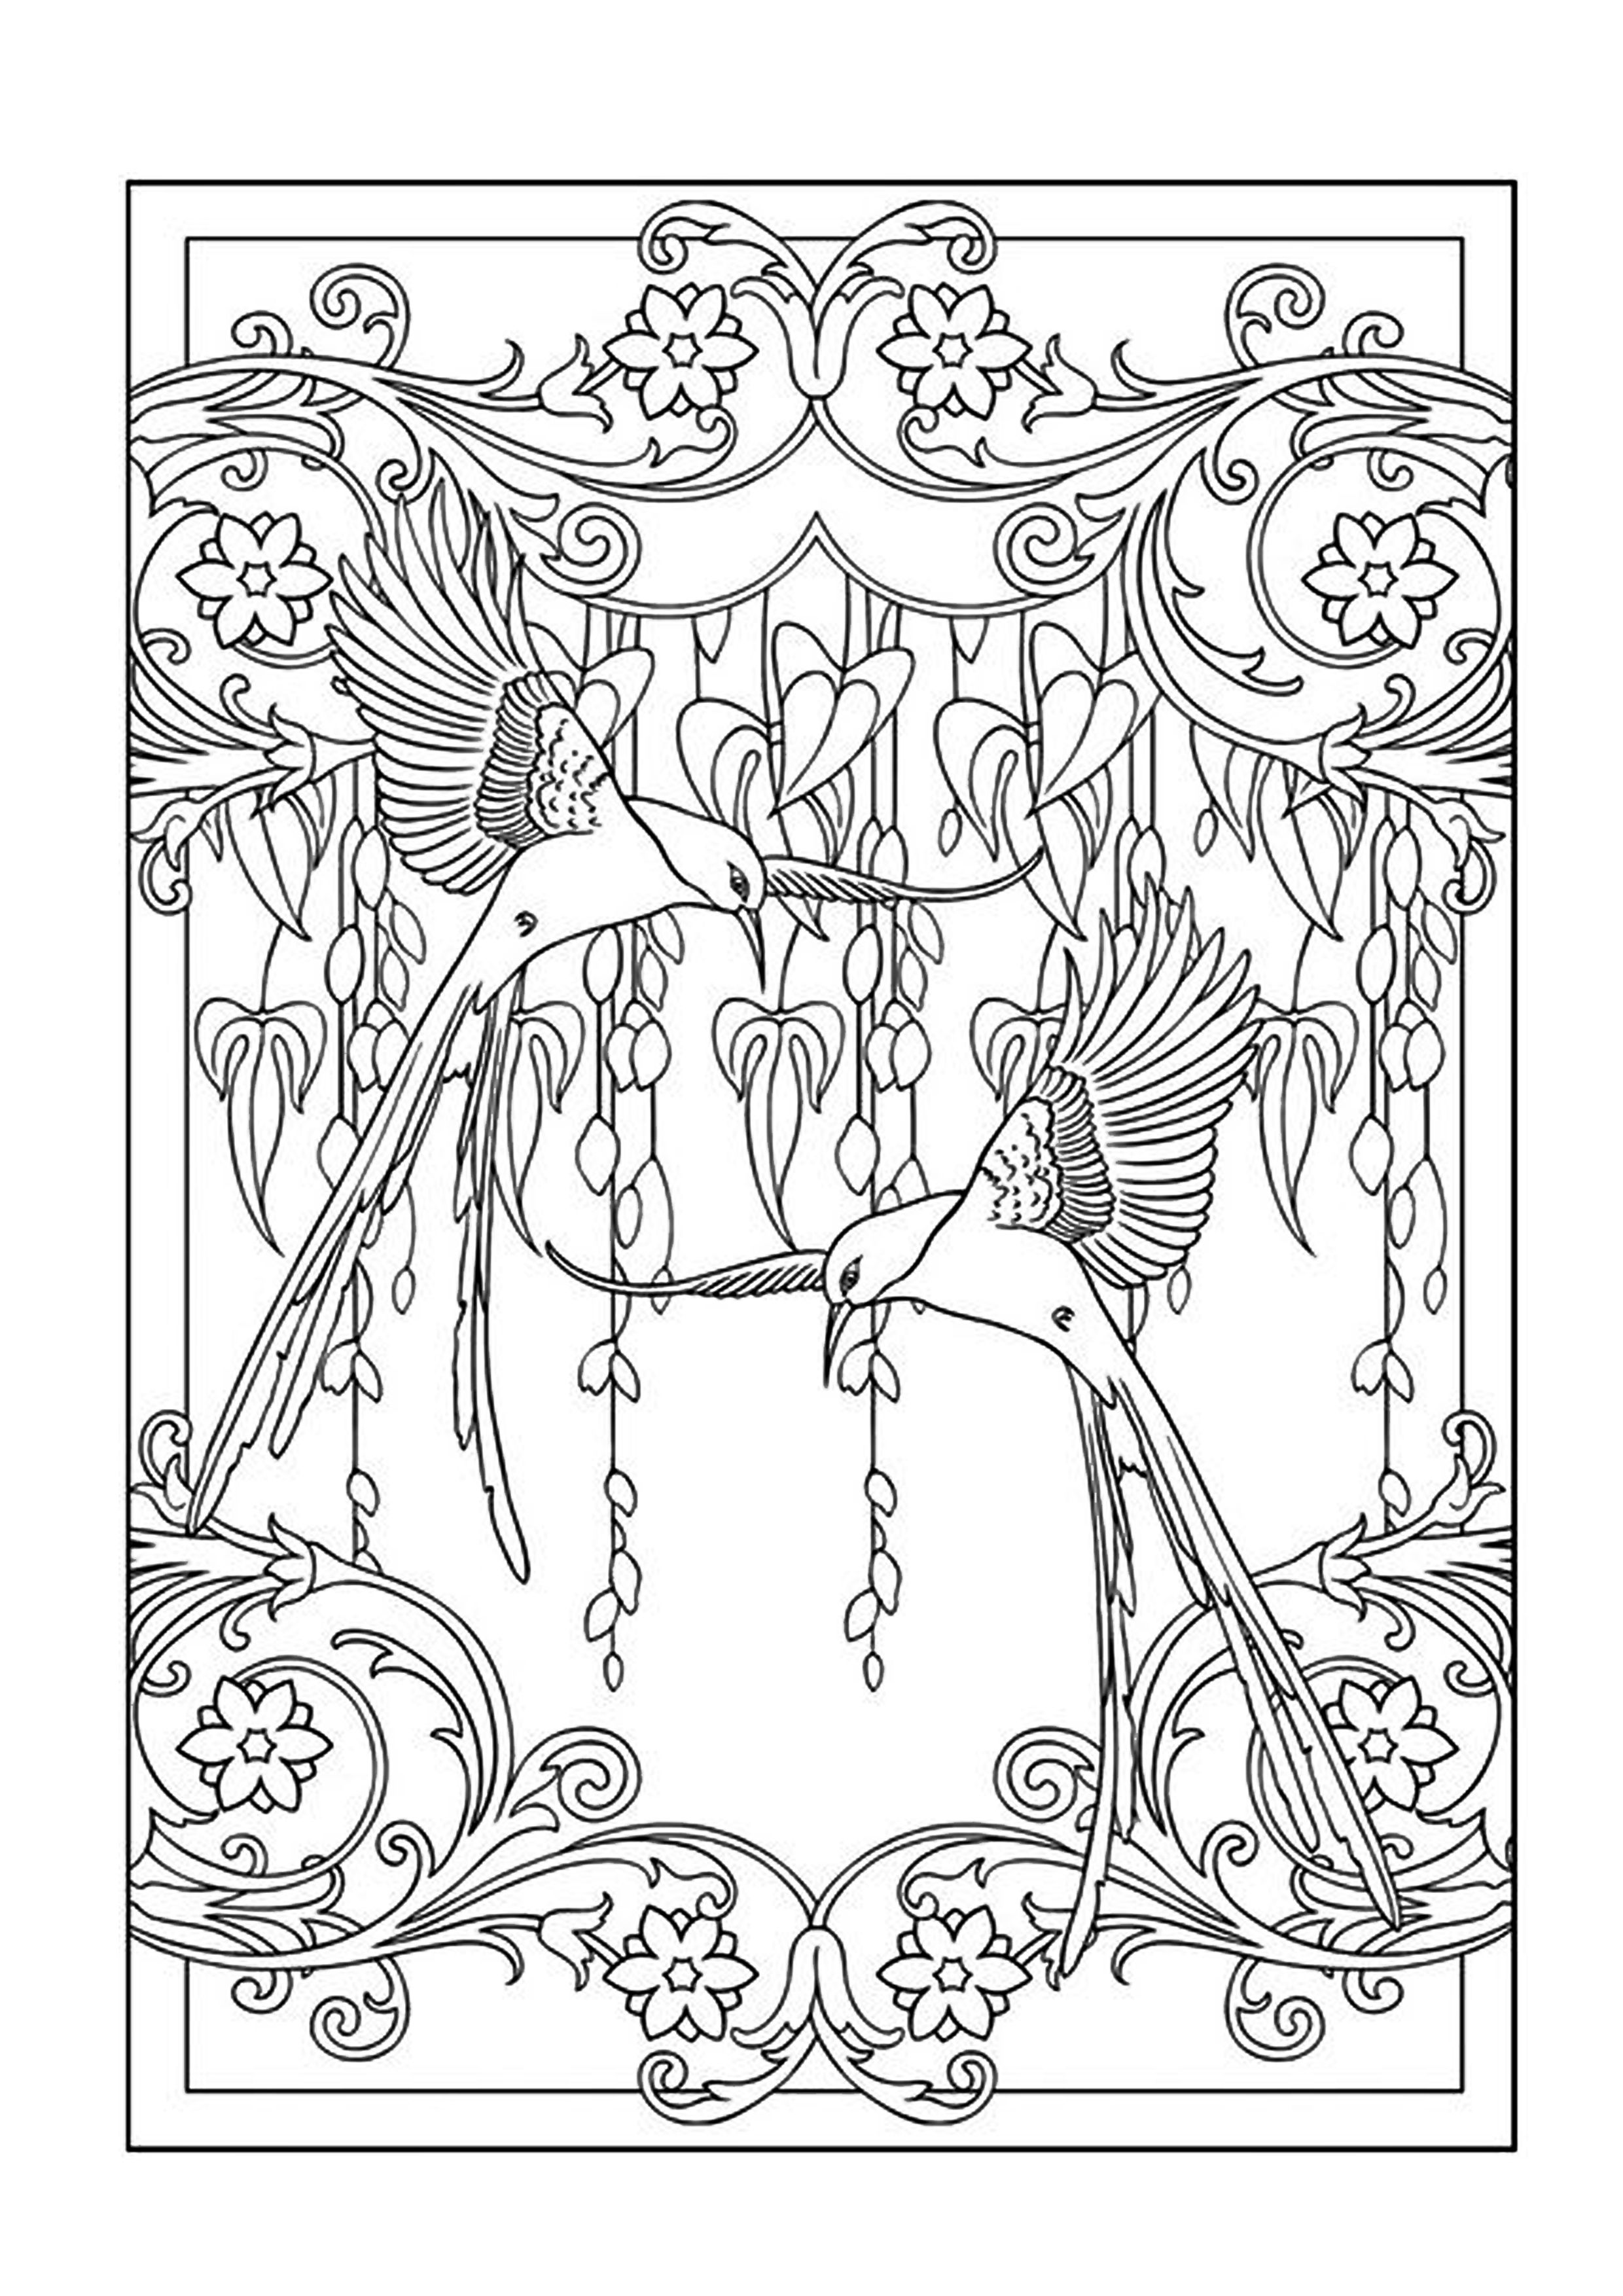 Colouring Books - FREE printable A4 size - Hummingbirds // Imagenes ...